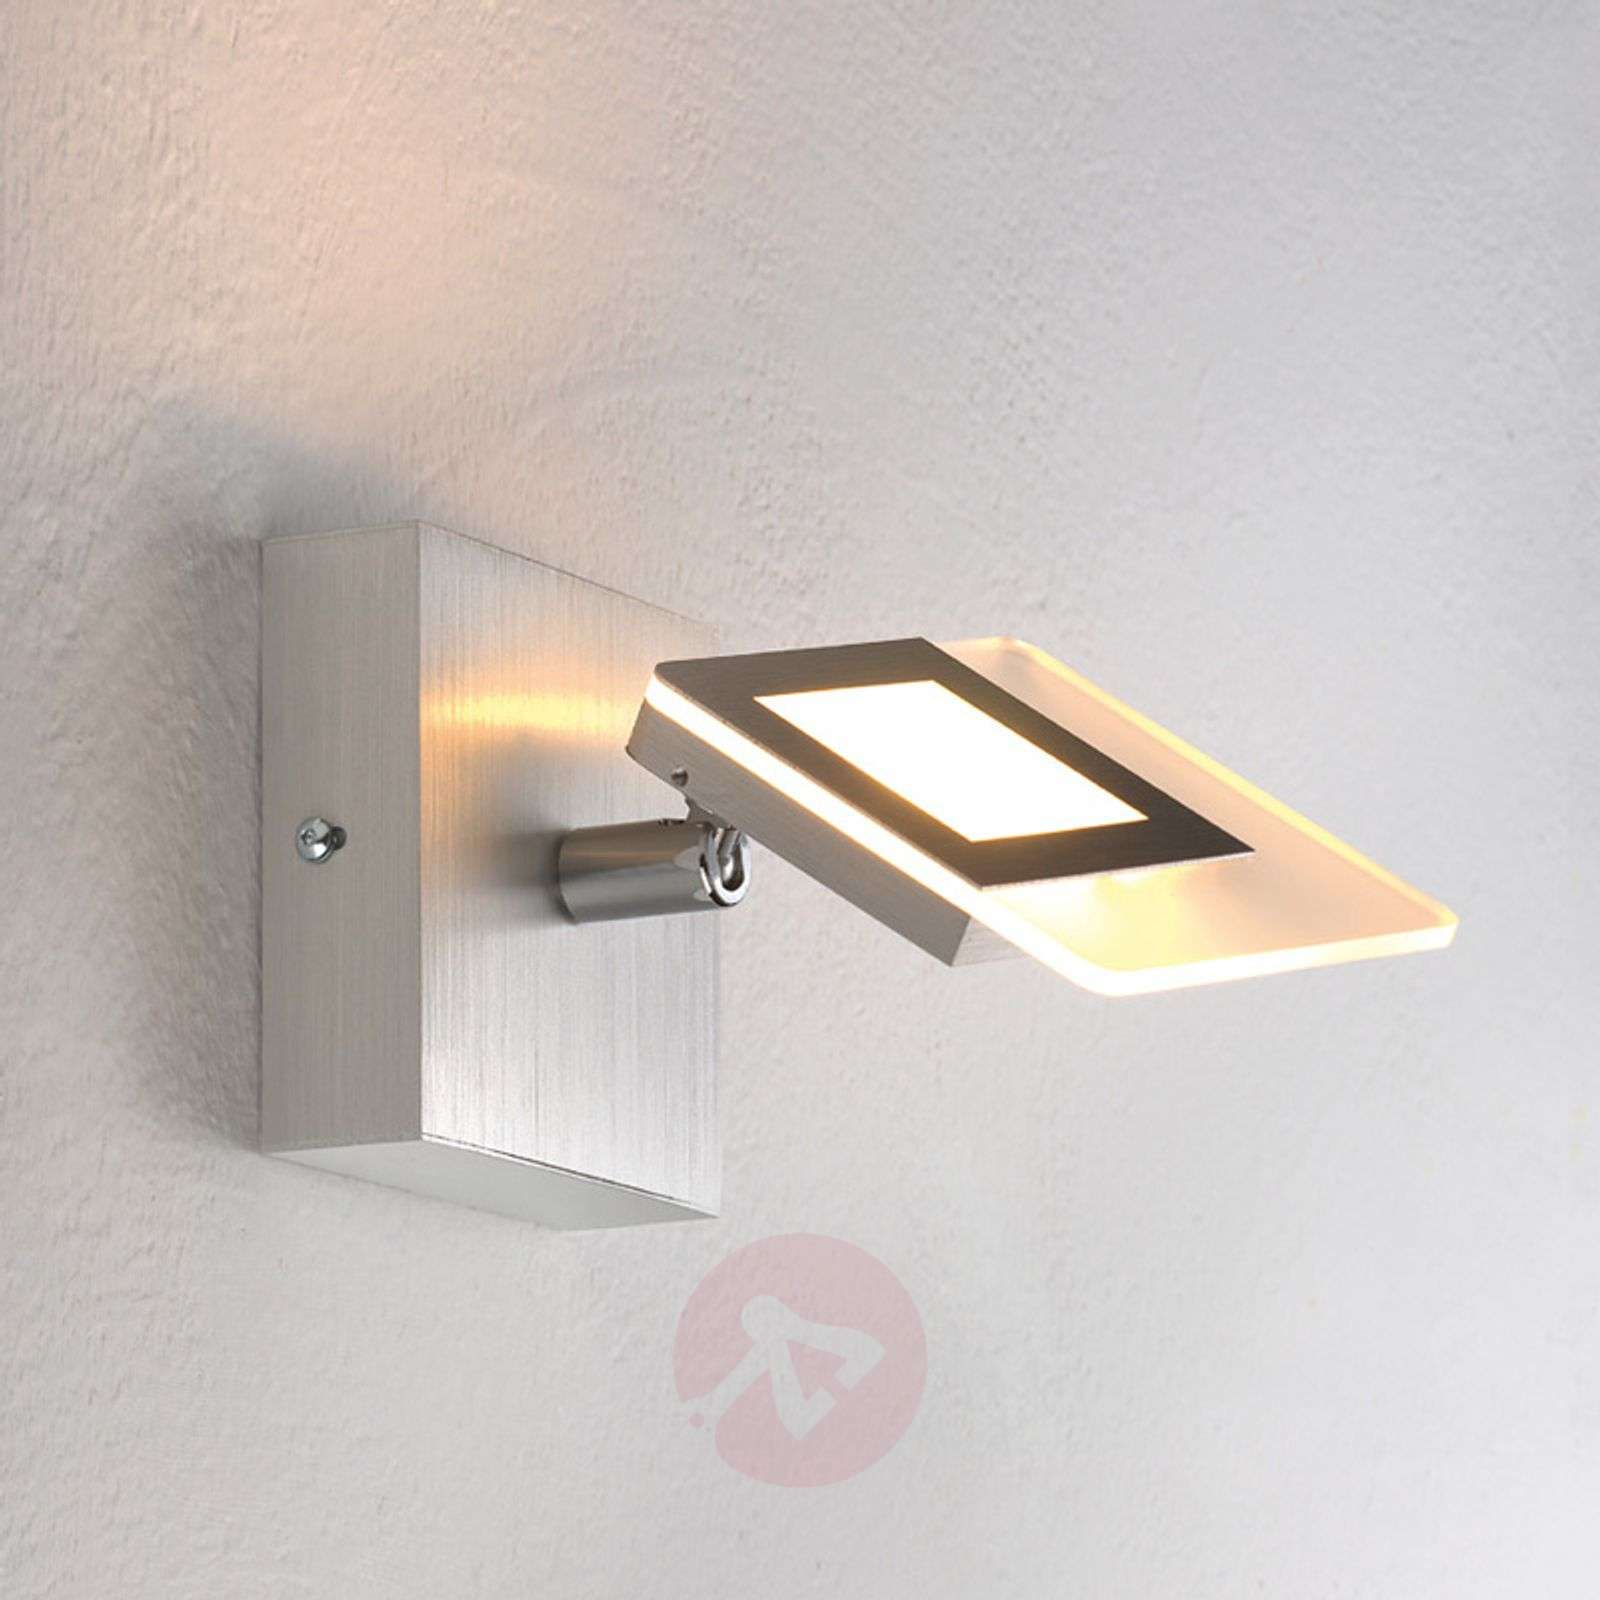 Moderno foco de pared LED Line-1556044-01